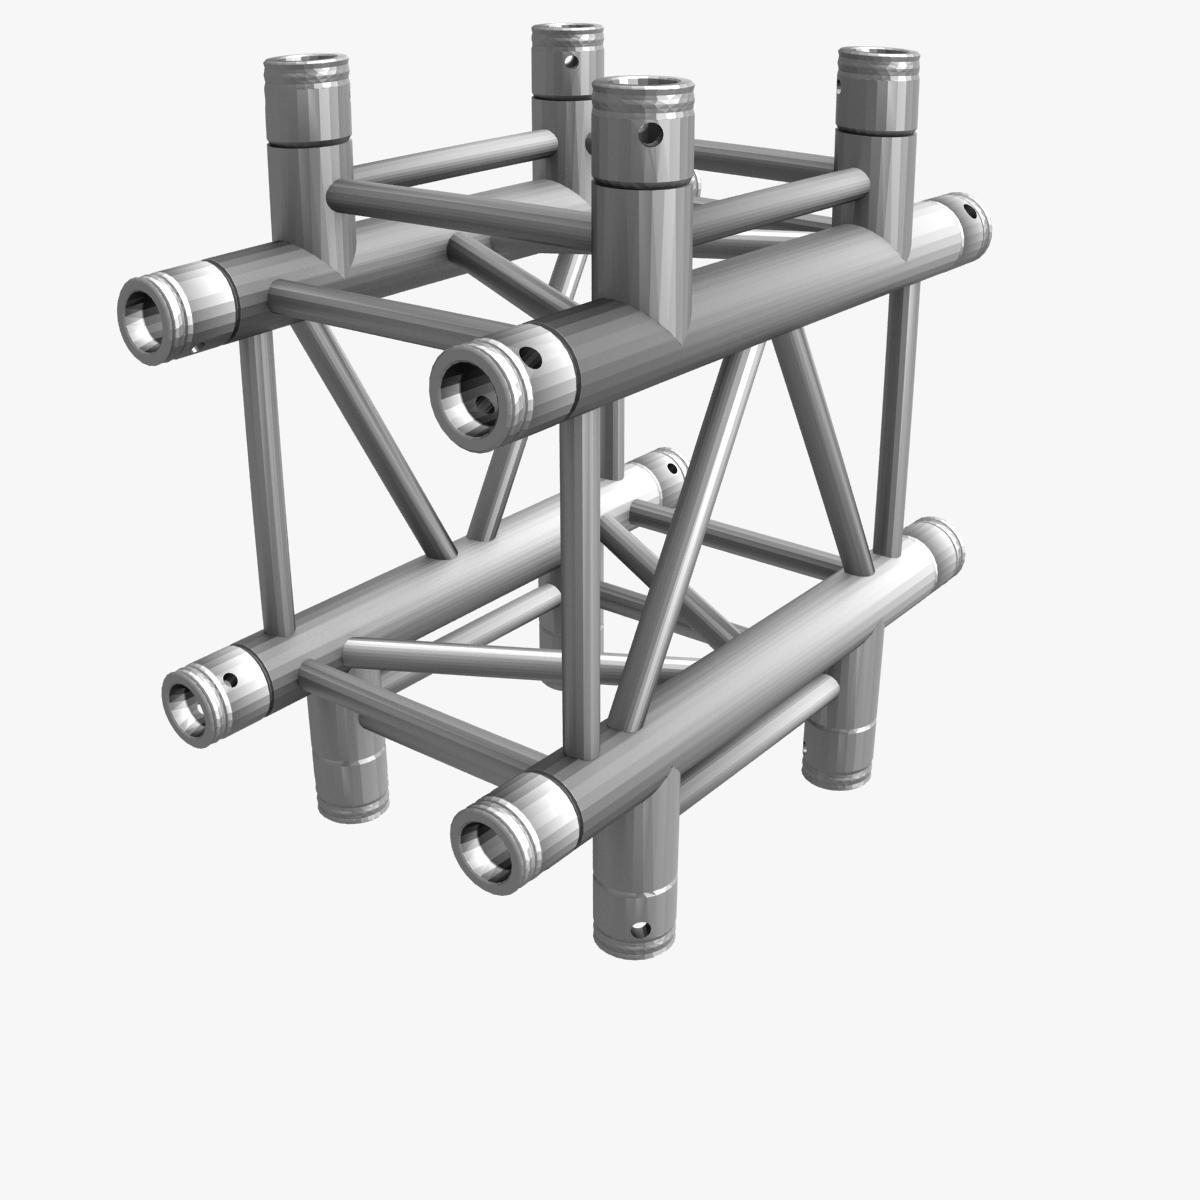 square truss standard (collection 24 modular) 3d model 3ds max dxf fbx c4d dae  texture obj 216341